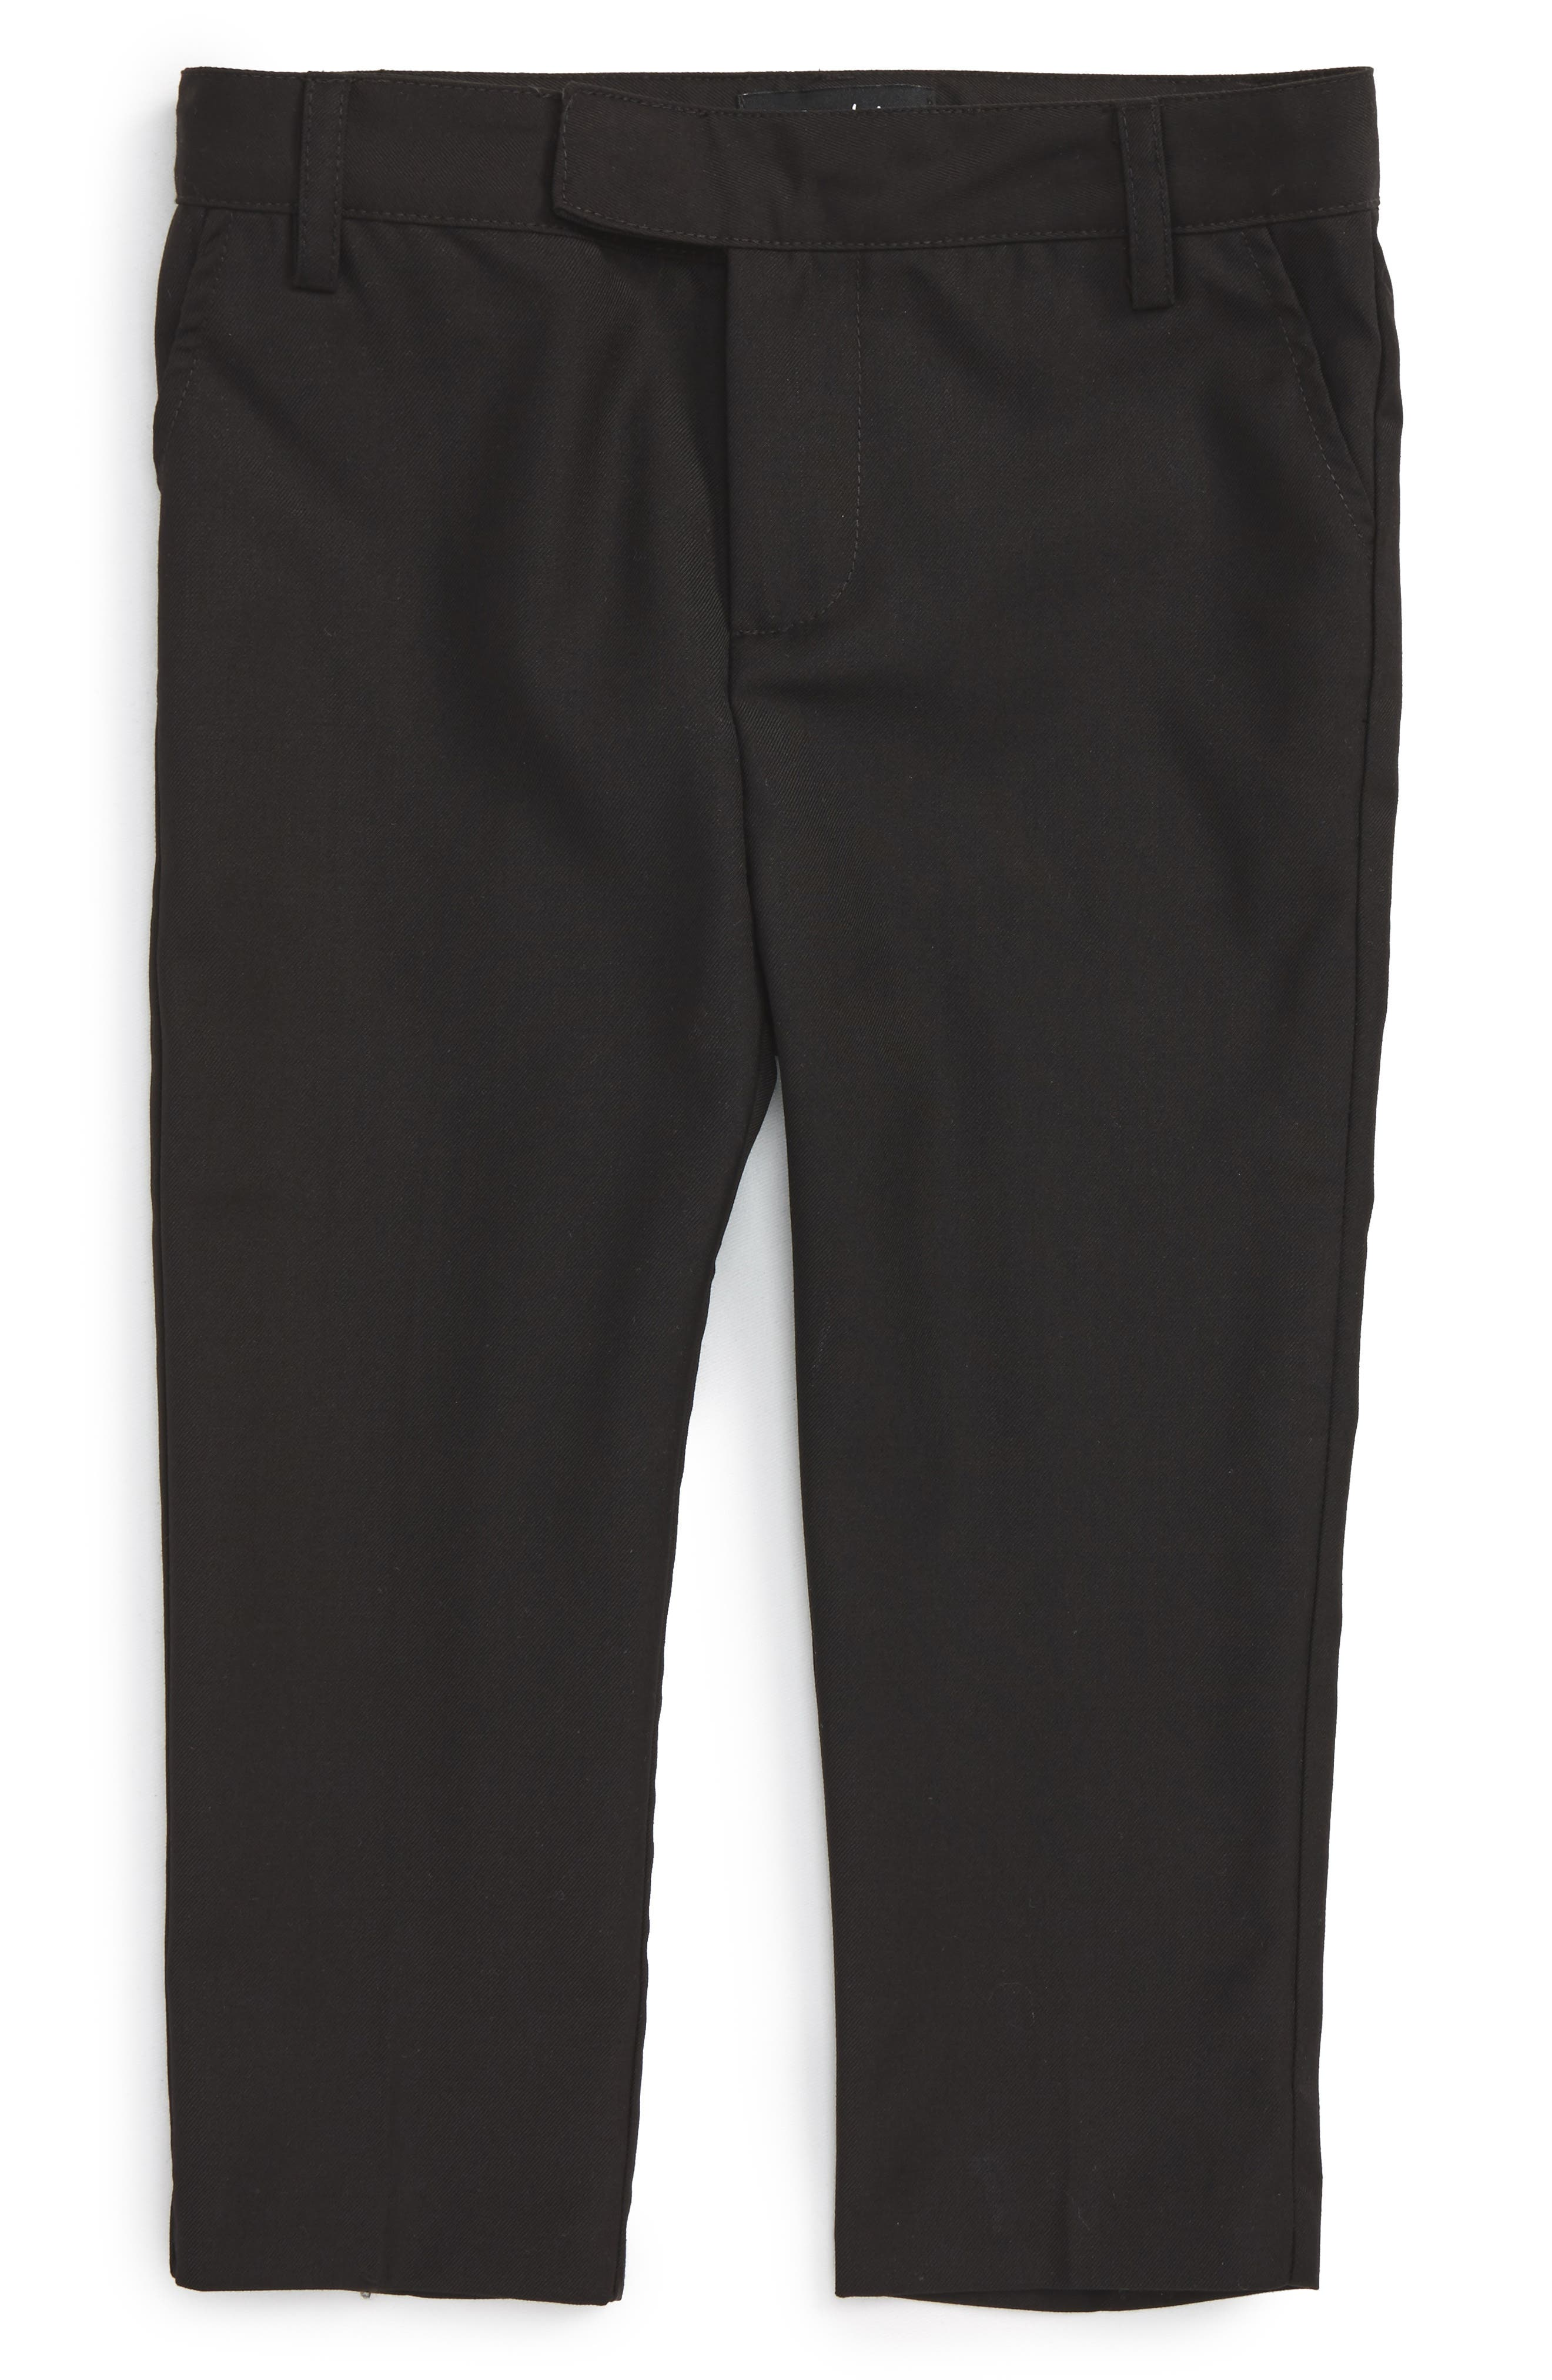 Alternate Image 1 Selected - Bardot Junior Harry Suit Pants (Baby Boys & Toddler Boys)